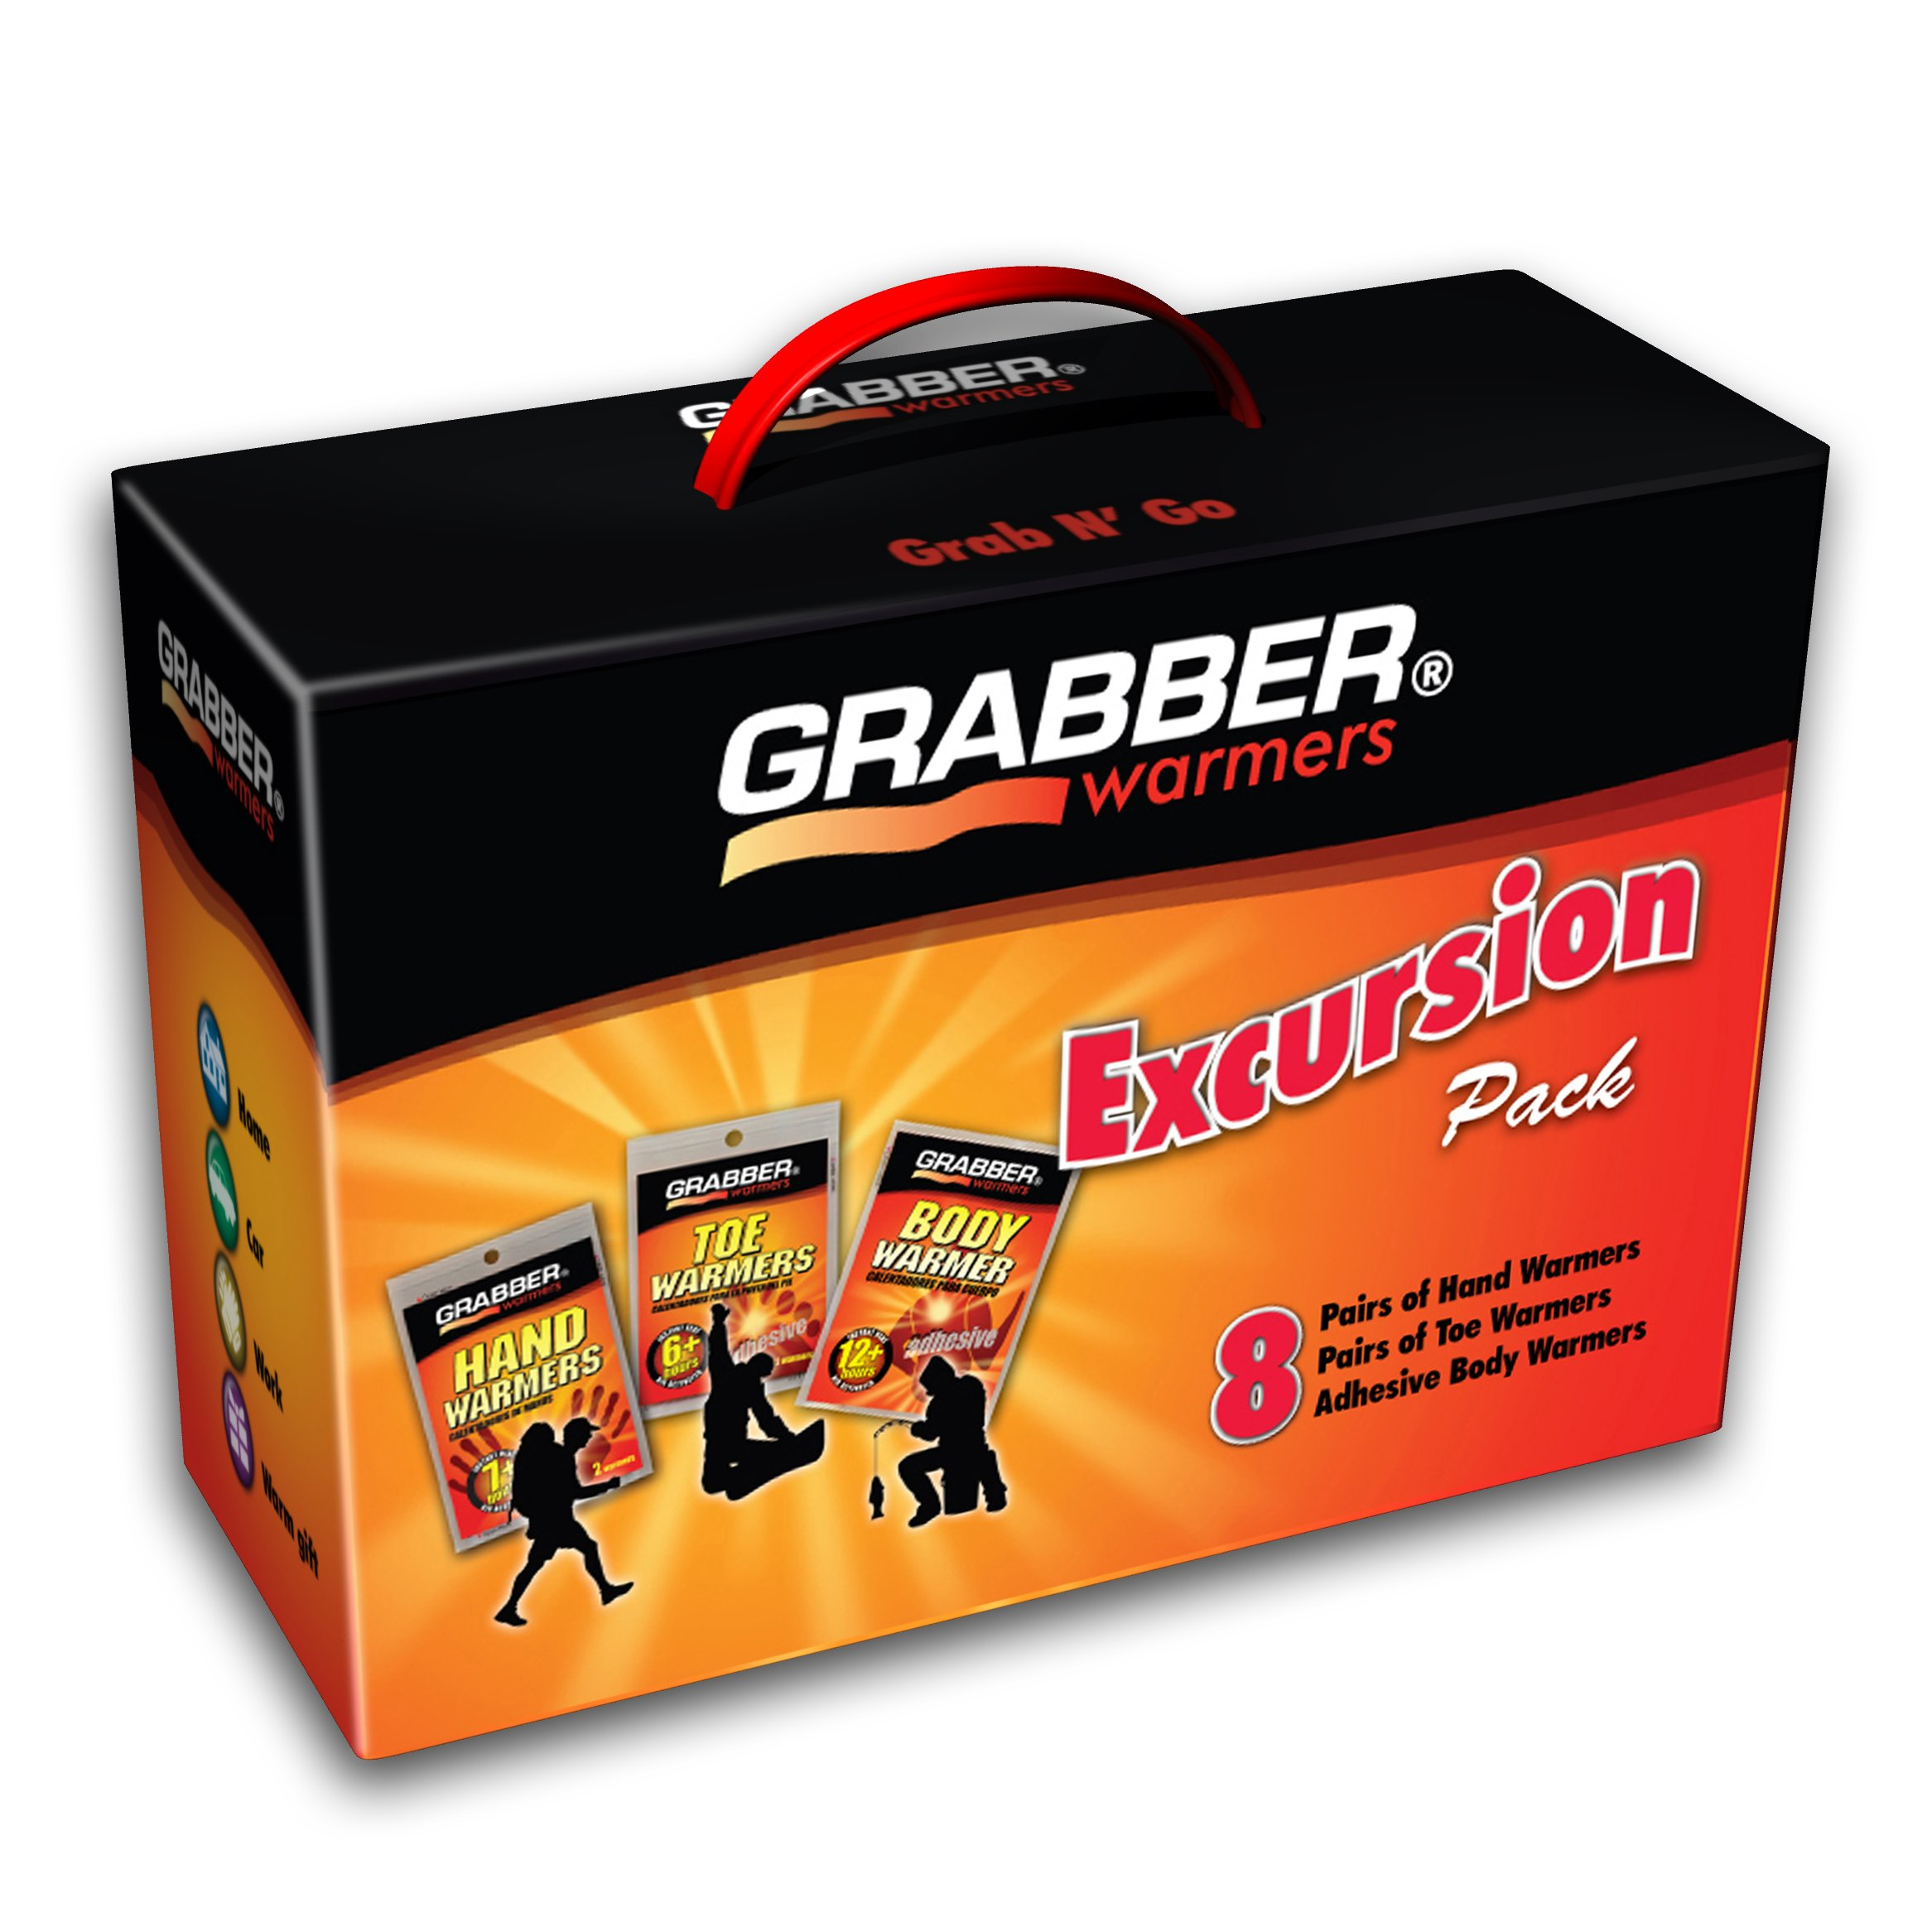 Grabber Warmers Grabber Excursion Multi-Pack Warmer Box, 8 Pair Hand, 8 Pair Toe, 8 Peel N' Stick Body Warmers, 24-Count